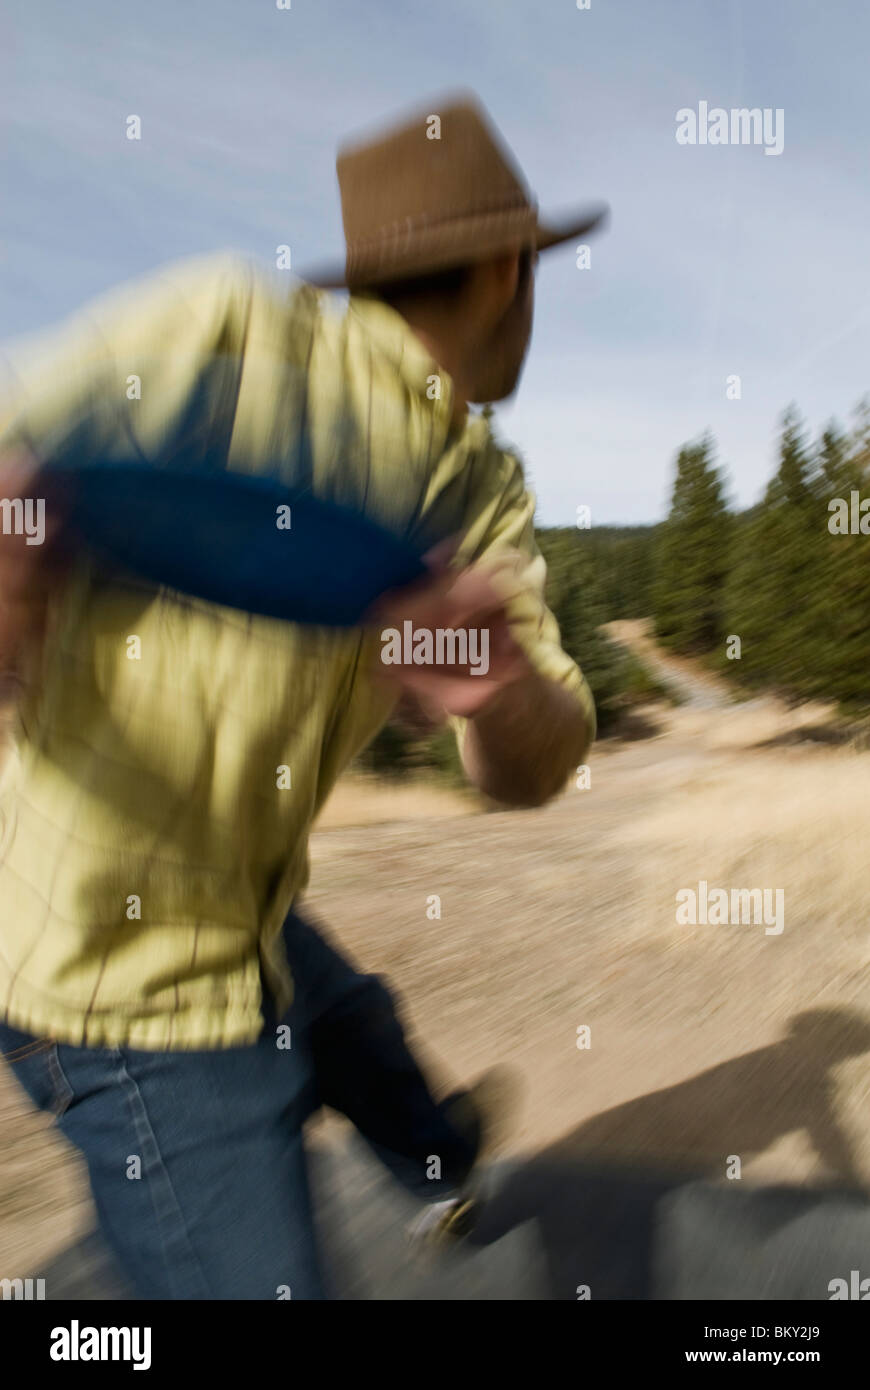 Teeing off on a par 3, a young man prepares to throw a disk during a game of disc golf in Lake Tahoe, California. - Stock Image